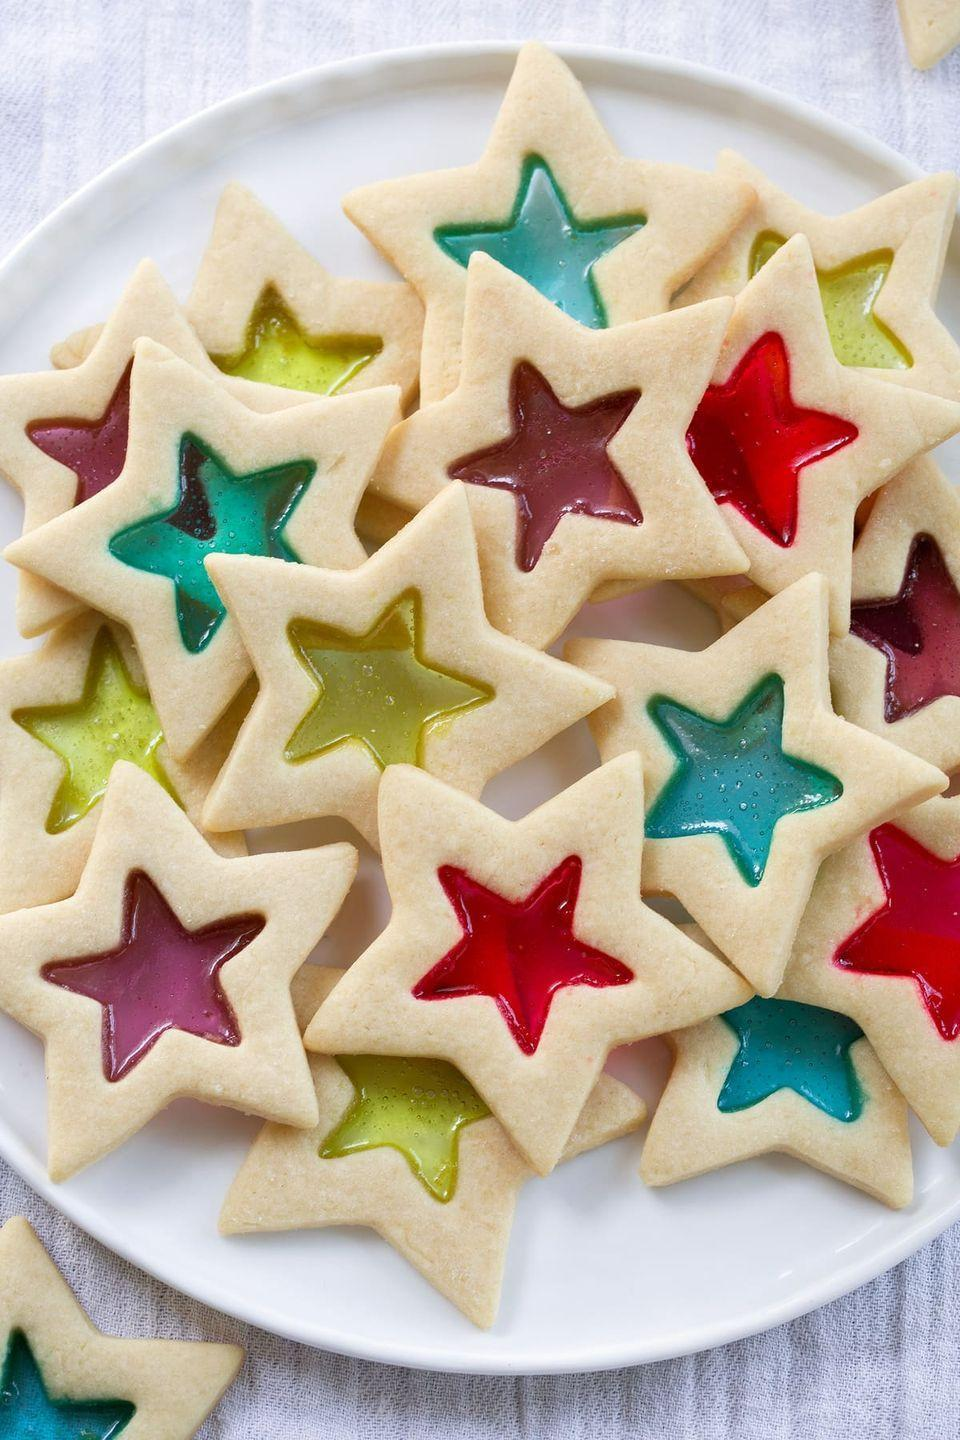 "<p>These cookies are reminiscent of the stained glass windows at church on Christmas morning—and they're so much easier to make than you think.</p><p><strong>Get the recipe at <a href=""https://www.cookingclassy.com/stained-glass-cookies/"" rel=""nofollow noopener"" target=""_blank"" data-ylk=""slk:Cooking Classy"" class=""link rapid-noclick-resp"">Cooking Classy</a>.</strong></p><p><a class=""link rapid-noclick-resp"" href=""https://www.amazon.com/JOLLY-RANCHER-Holiday-Candy-Assortment/dp/B004YGQK5K/?tag=syn-yahoo-20&ascsubtag=%5Bartid%7C10050.g.647%5Bsrc%7Cyahoo-us"" rel=""nofollow noopener"" target=""_blank"" data-ylk=""slk:SHOP HARD CANDIES"">SHOP HARD CANDIES</a></p>"